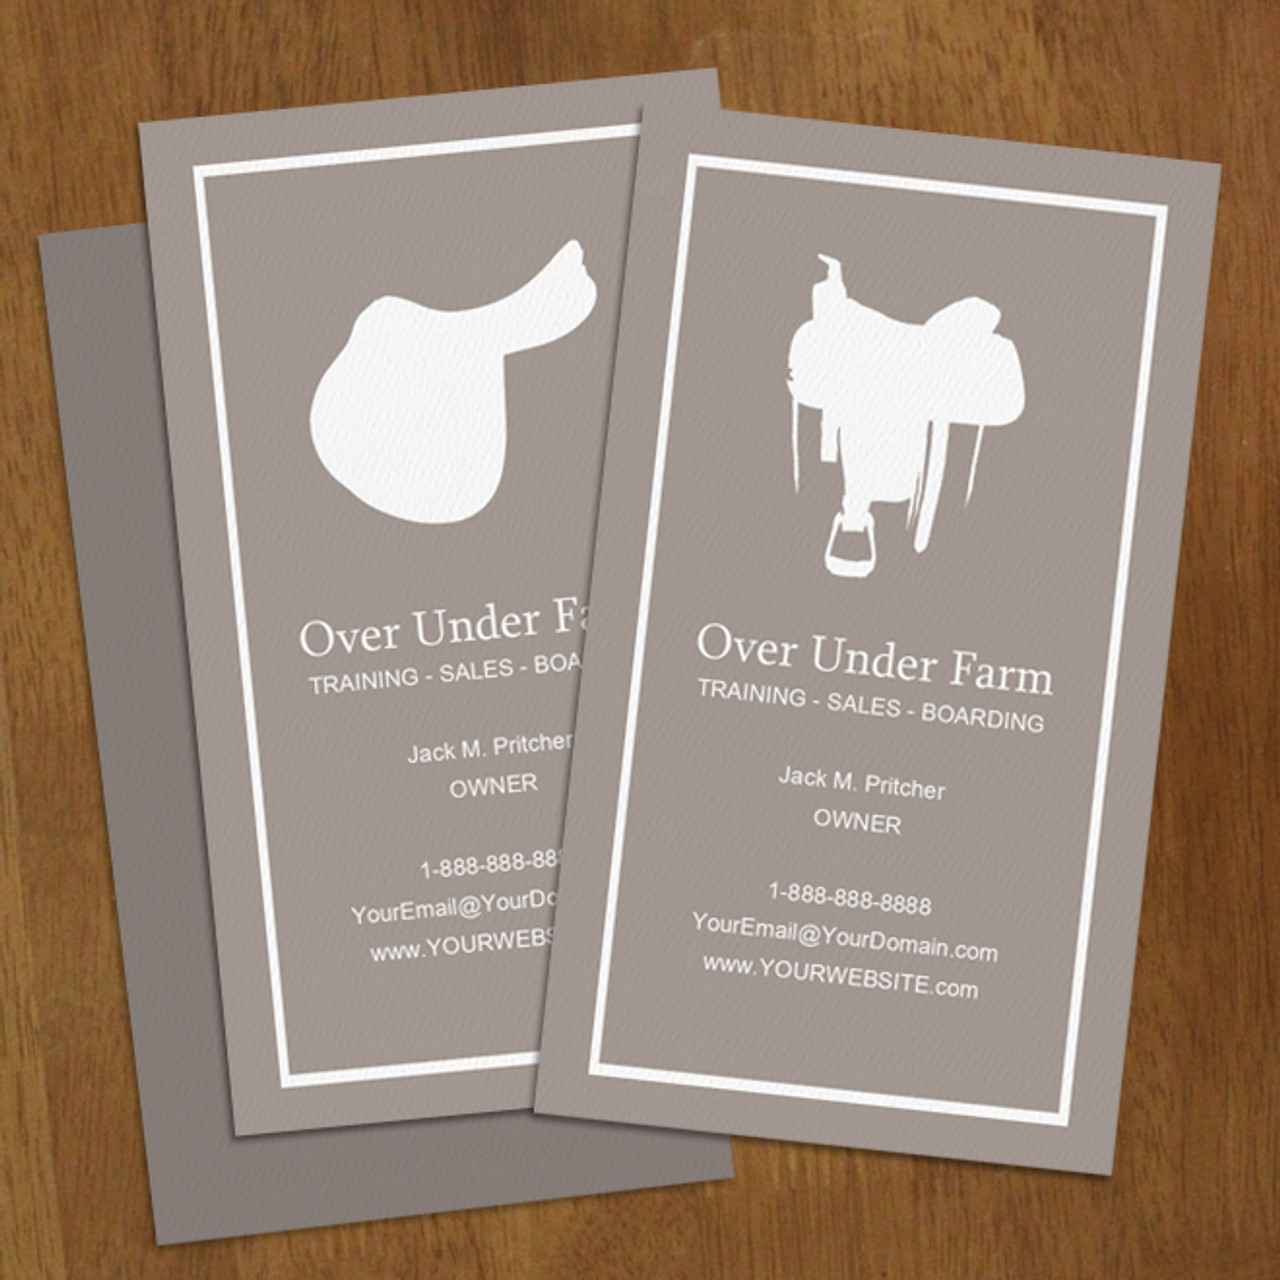 Equestrian business cards uk image collections card design and equestrian business cards uk image collections card design and equestrian business cards uk images card design reheart Gallery